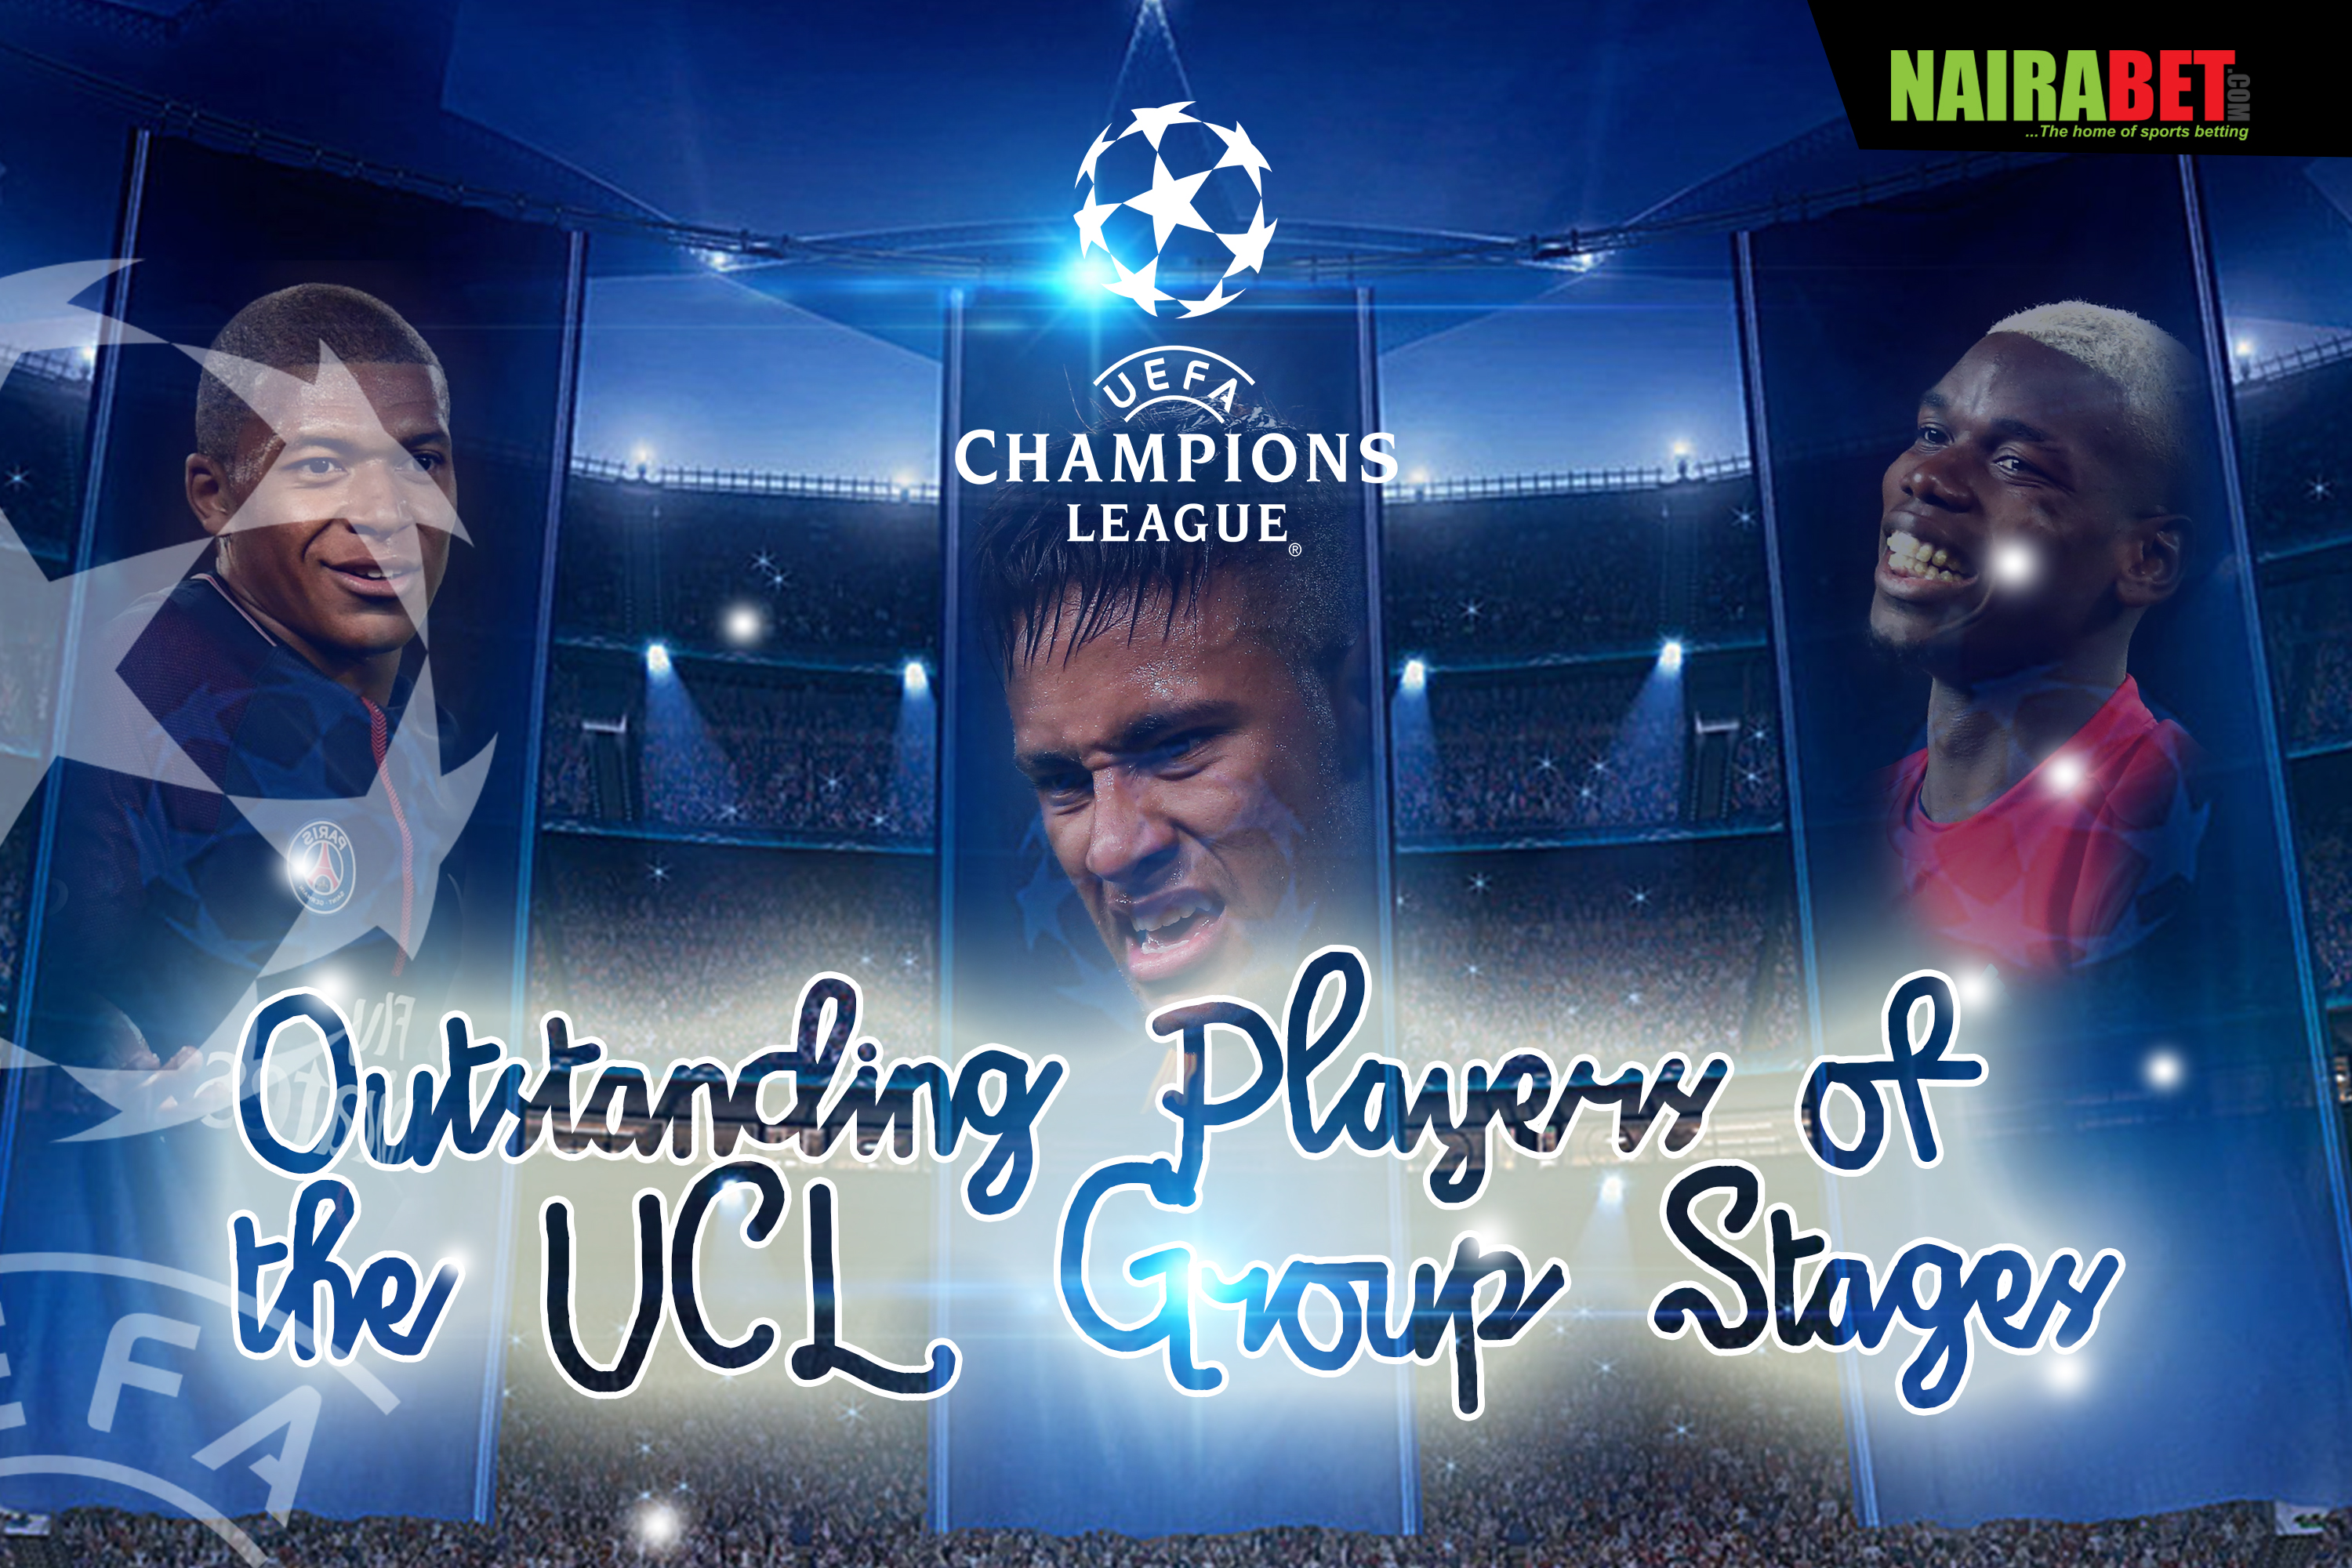 outstanding ucl players